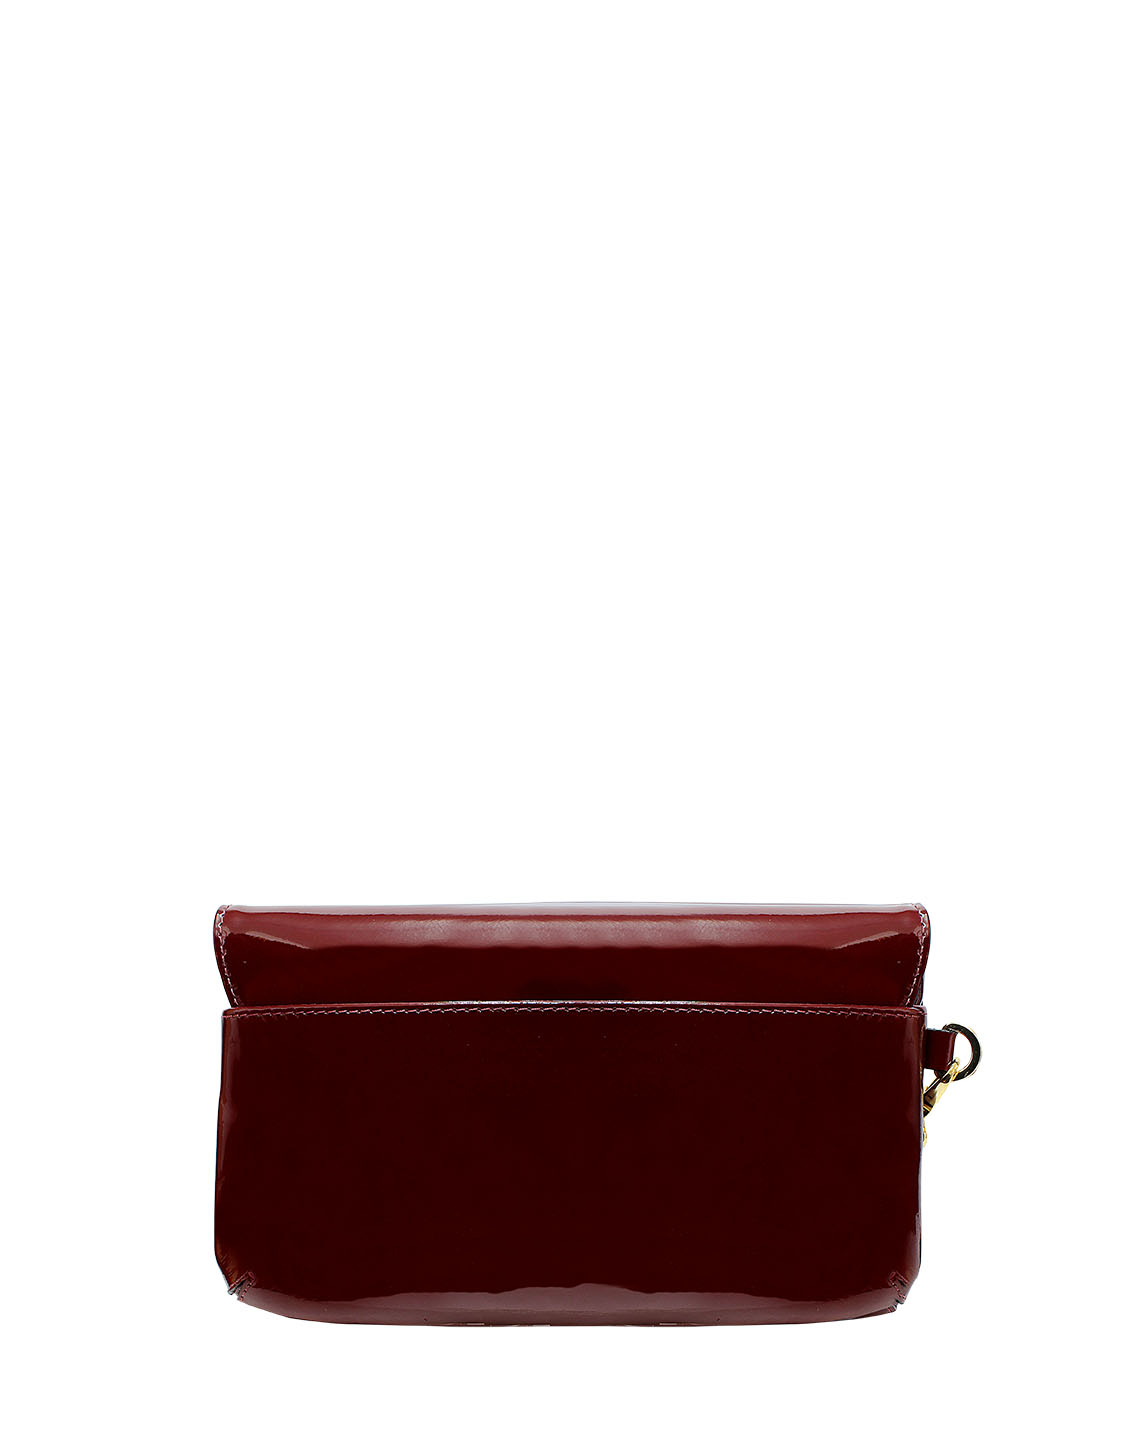 Carteras Clutch & Evening Bag DS-2455 Color Rojo